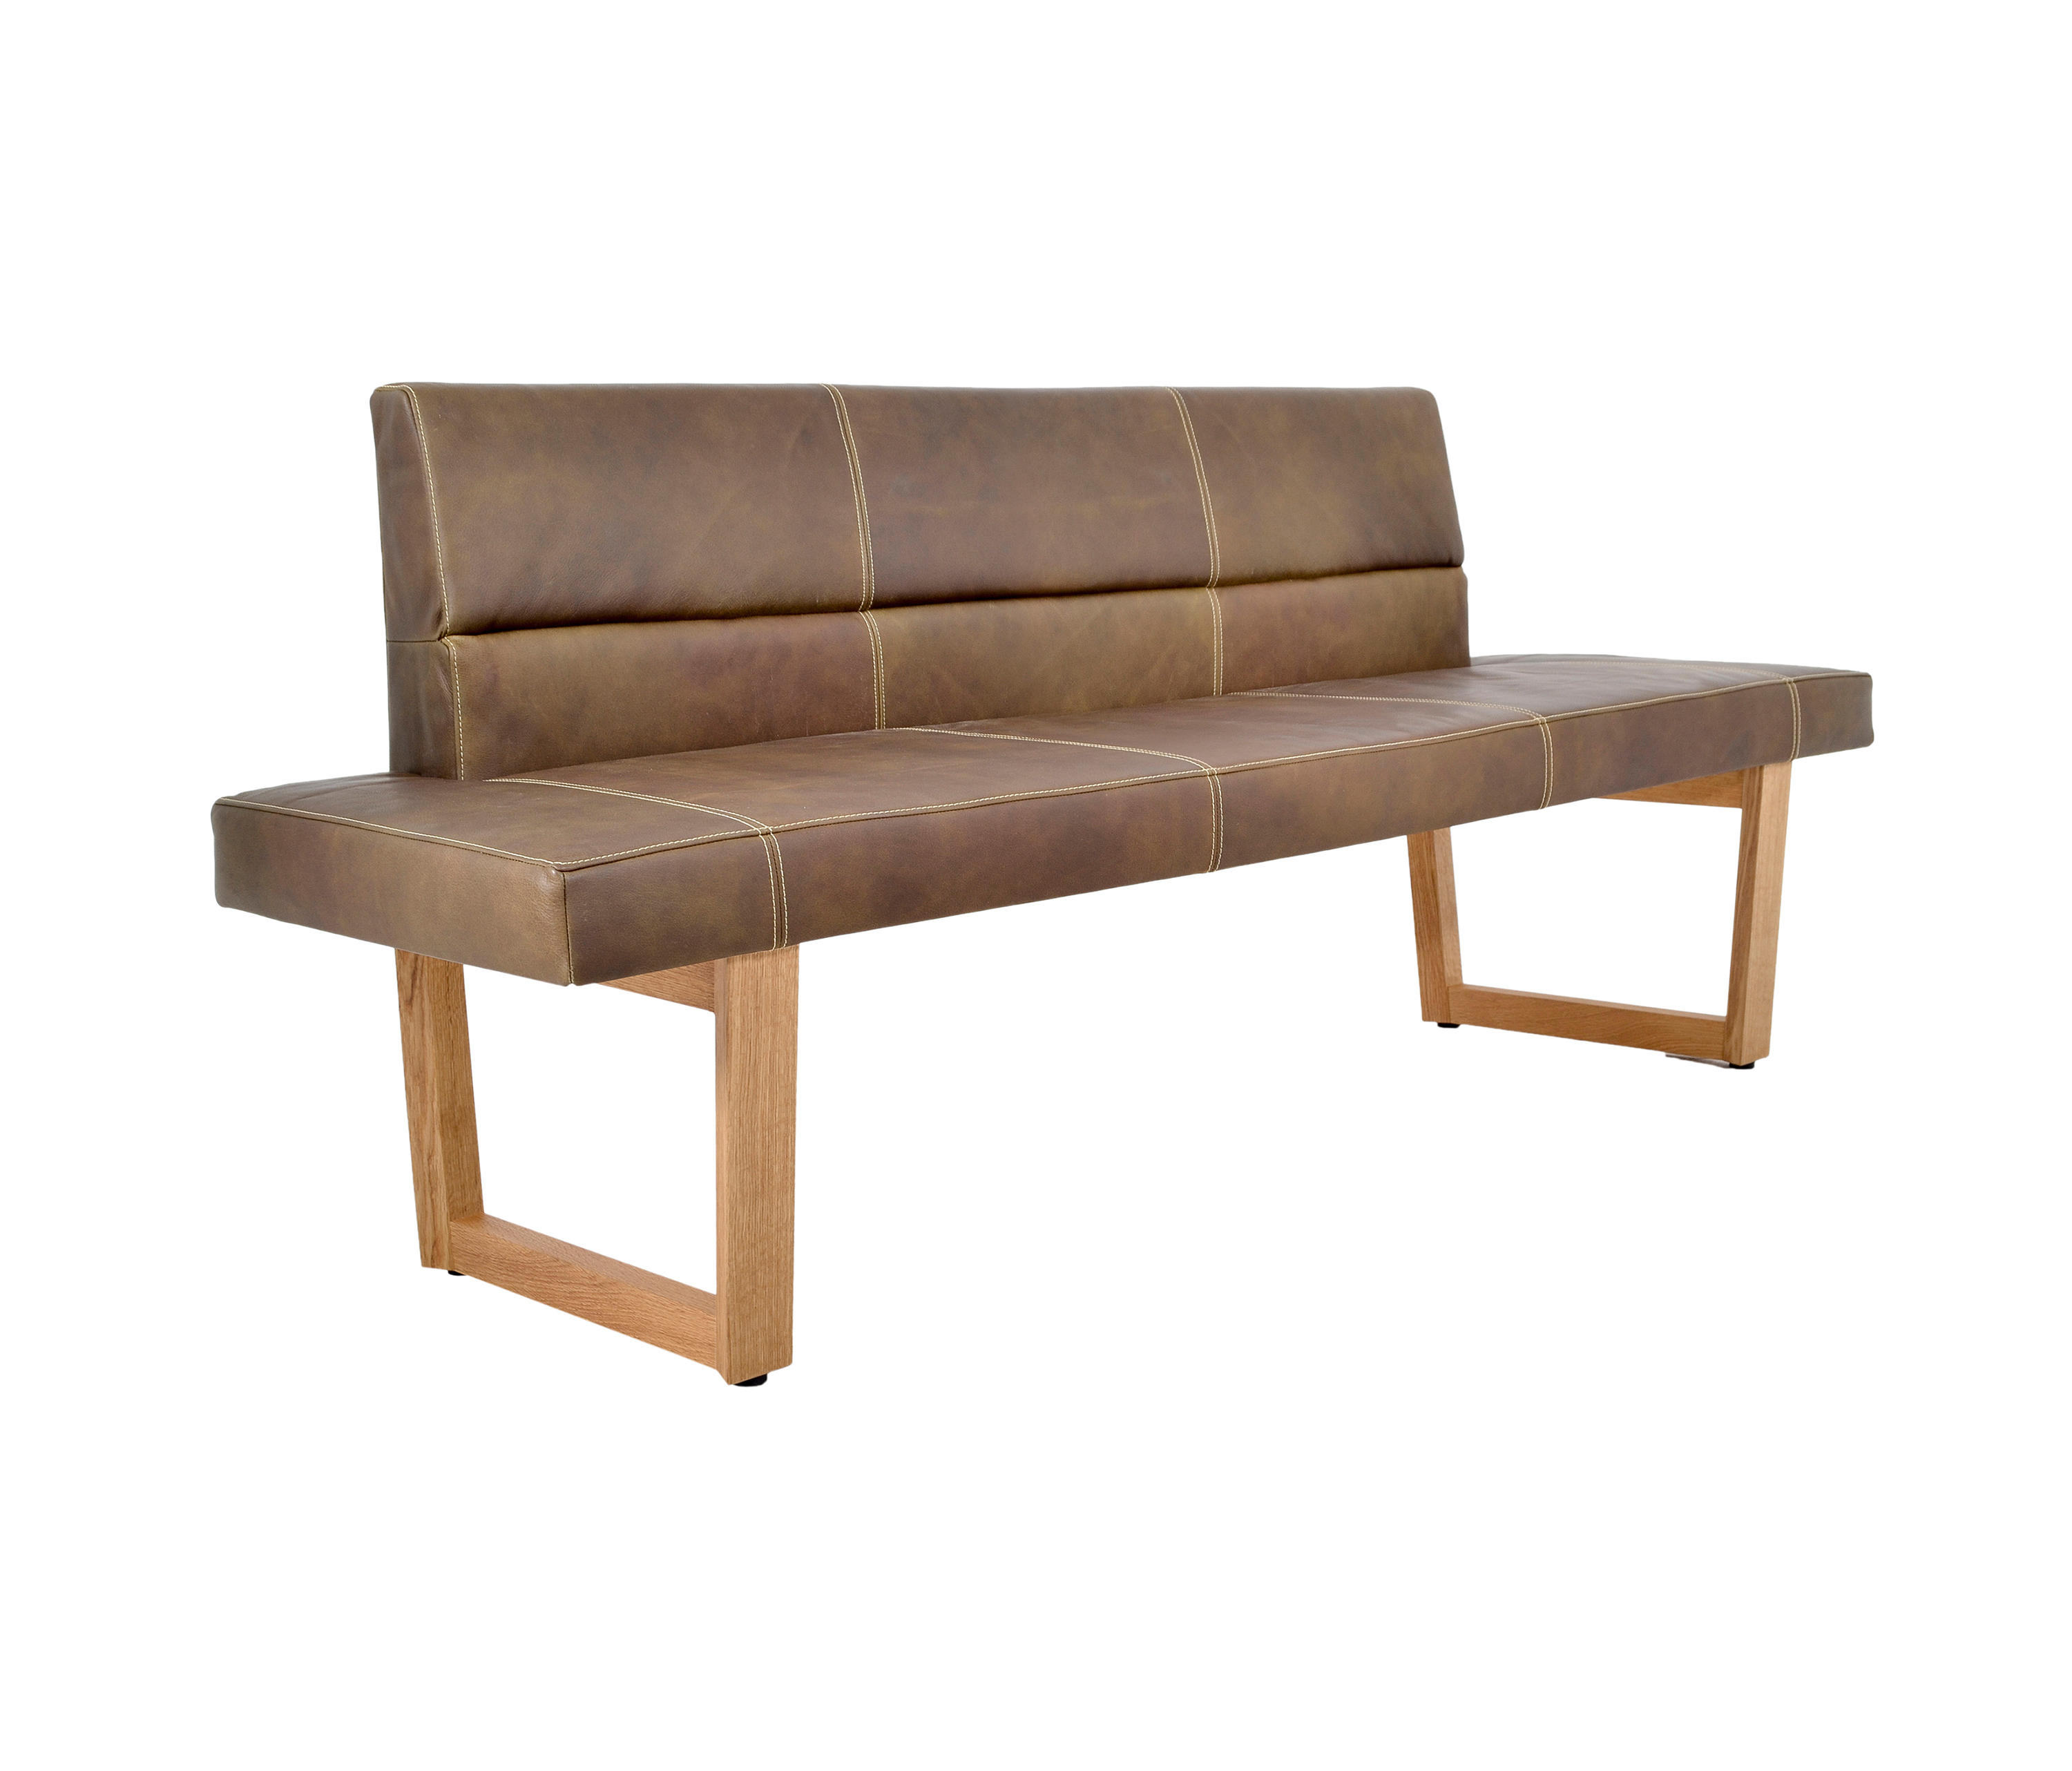 Attractive ... Bench Home Bench With Backrest By KFF | Lounge Sofas ... Pictures